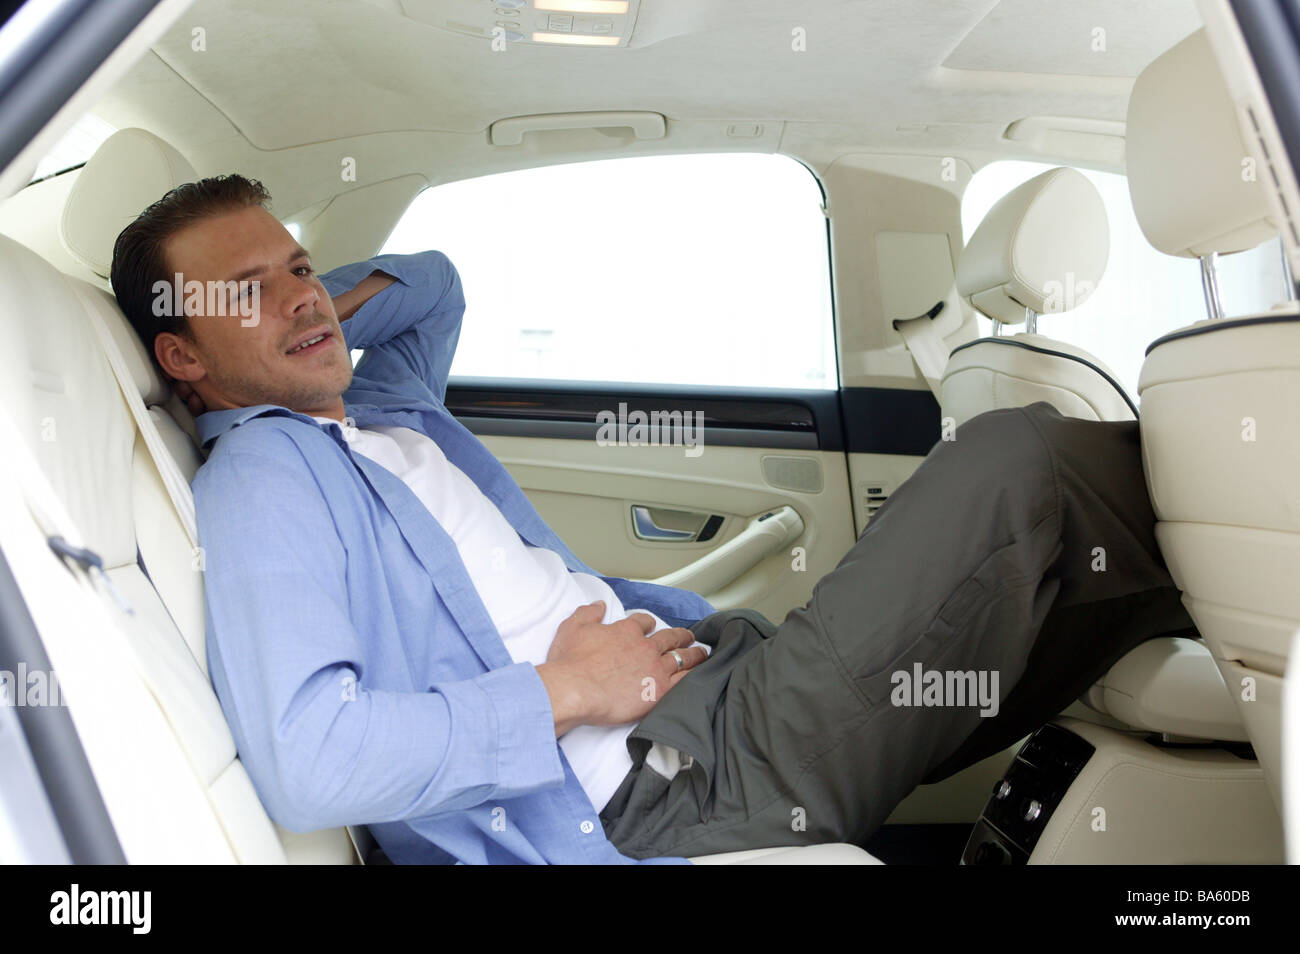 Man car back seat legs relaxen put up rela vehicle private car ...